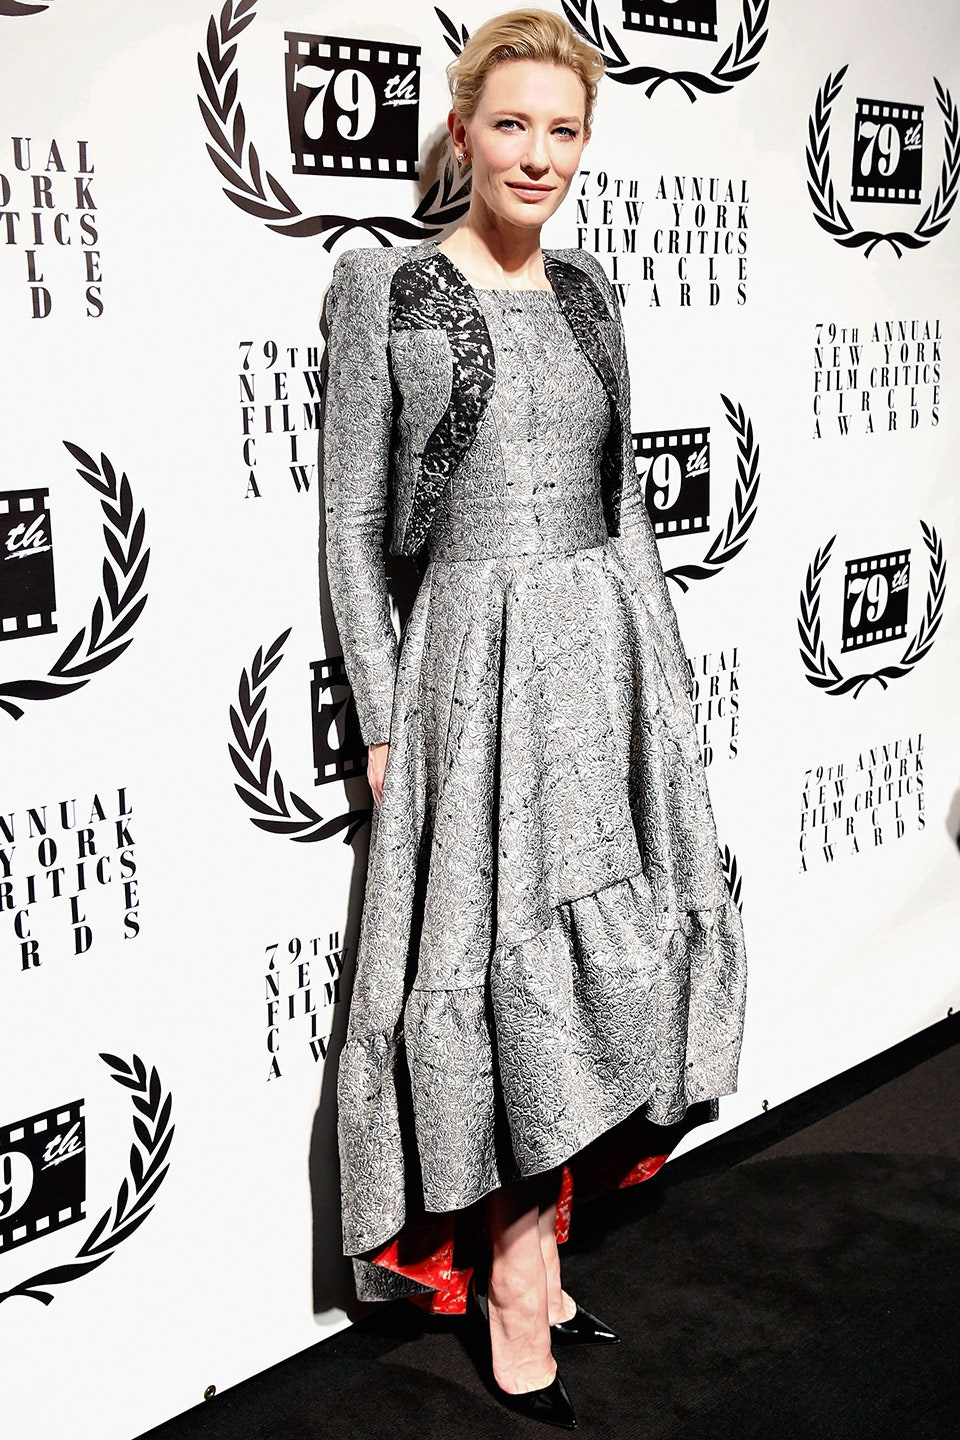 27_cate_blanchett_thrilled_fashion_critics_in_the_sculptural_antonio_berardi_dress_with_bold_red_lining_she_wore_to_the_2014_new_york_film_critics_awards.jpg